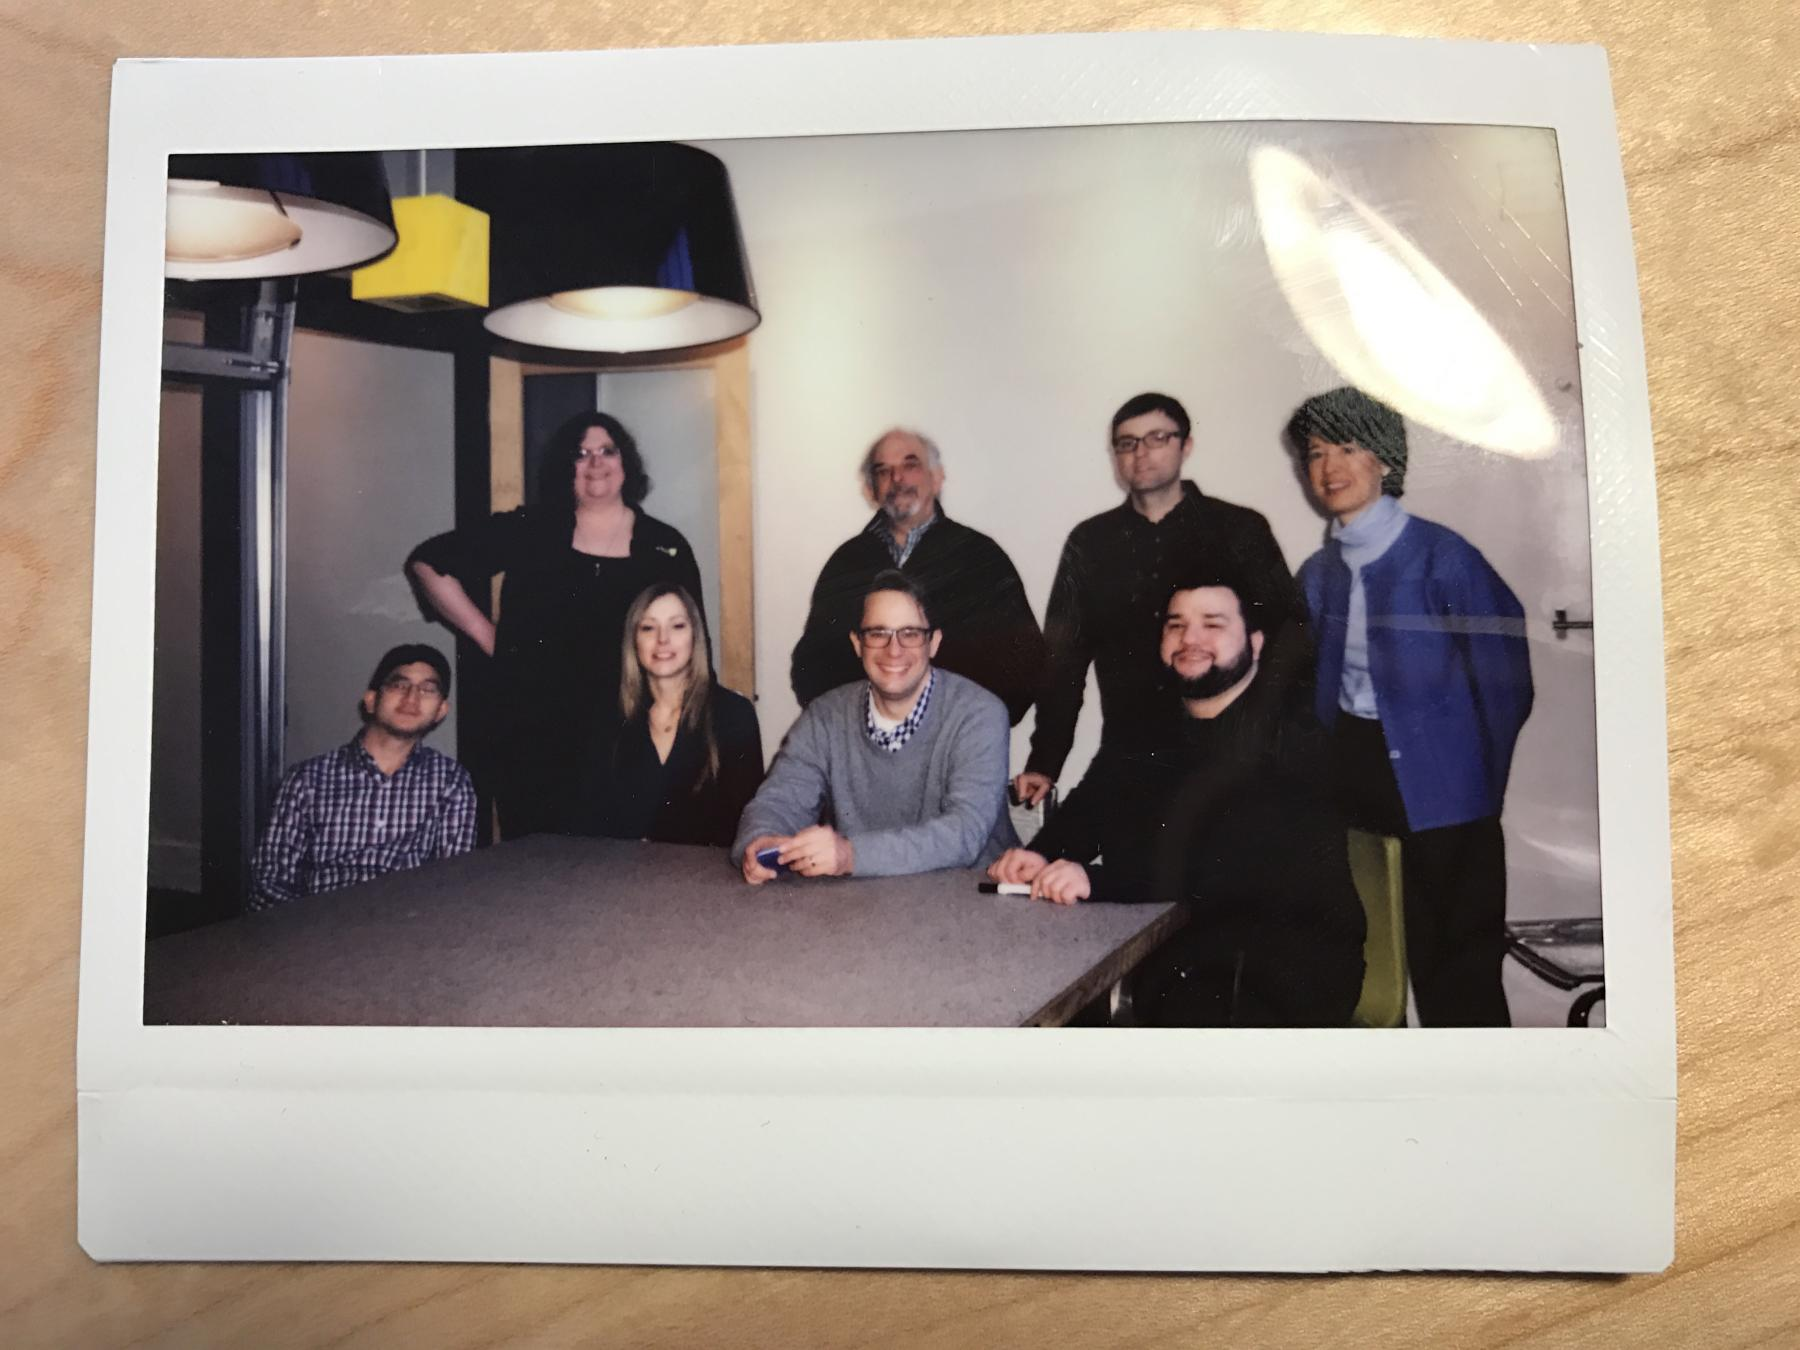 A photo of the polaroid from the last day in the office.